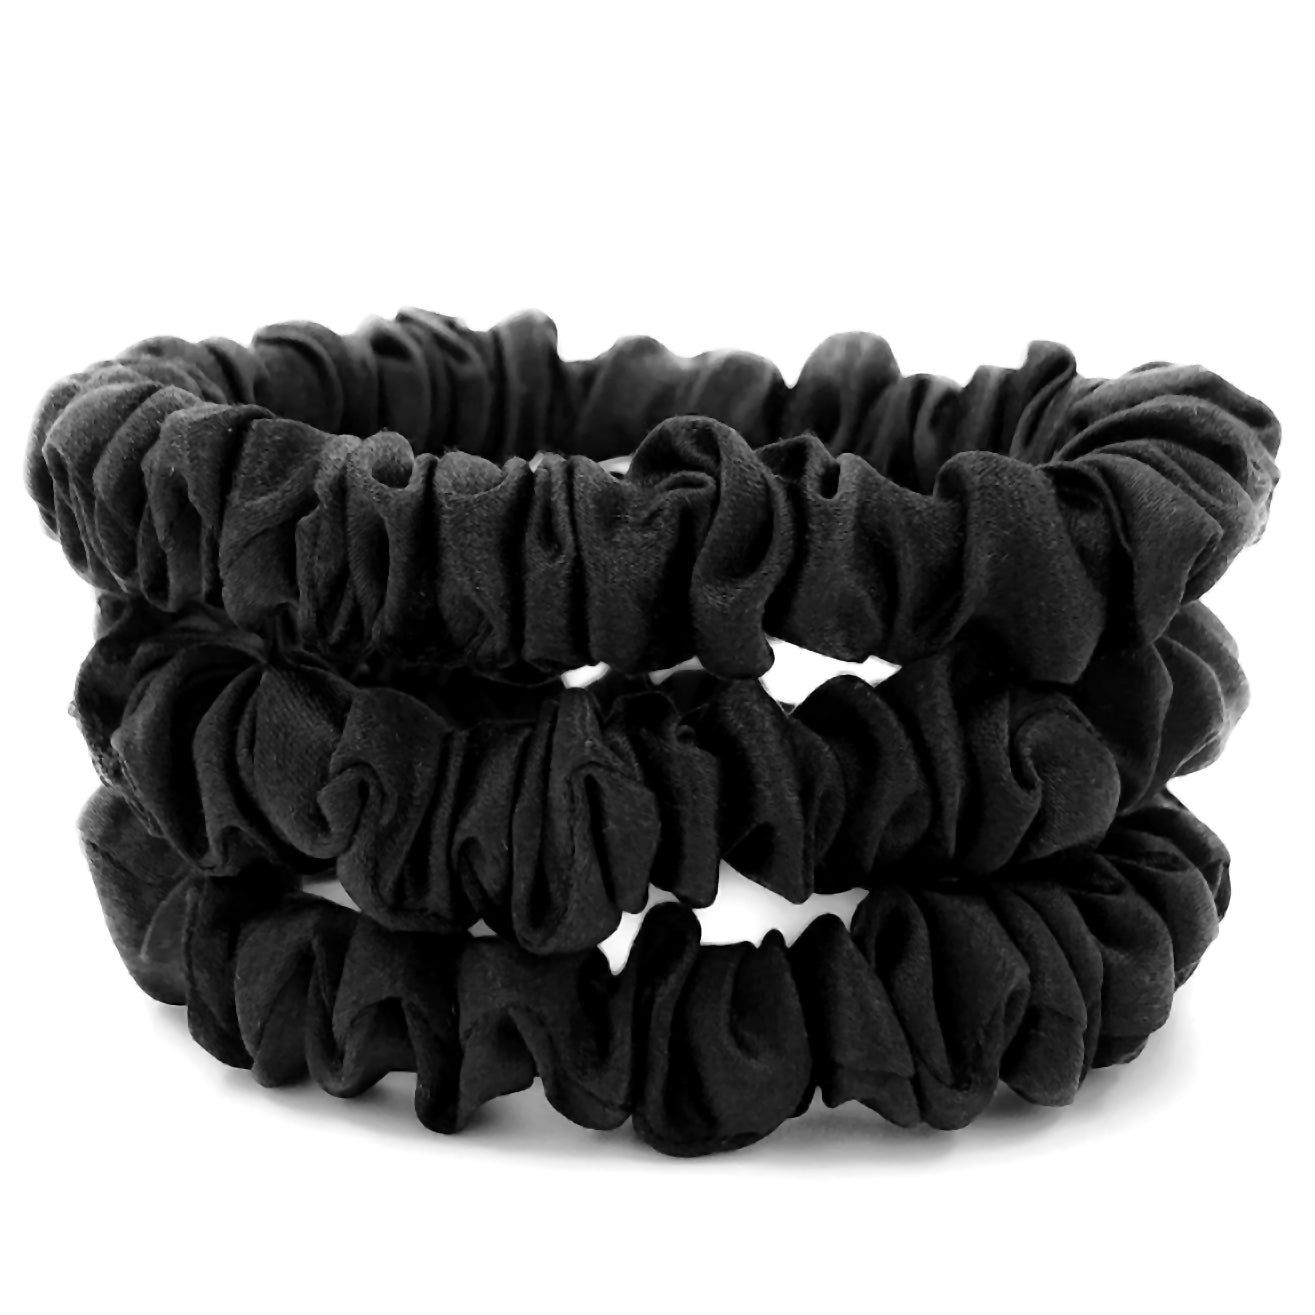 Large and Small All Black Scrunchie Sets